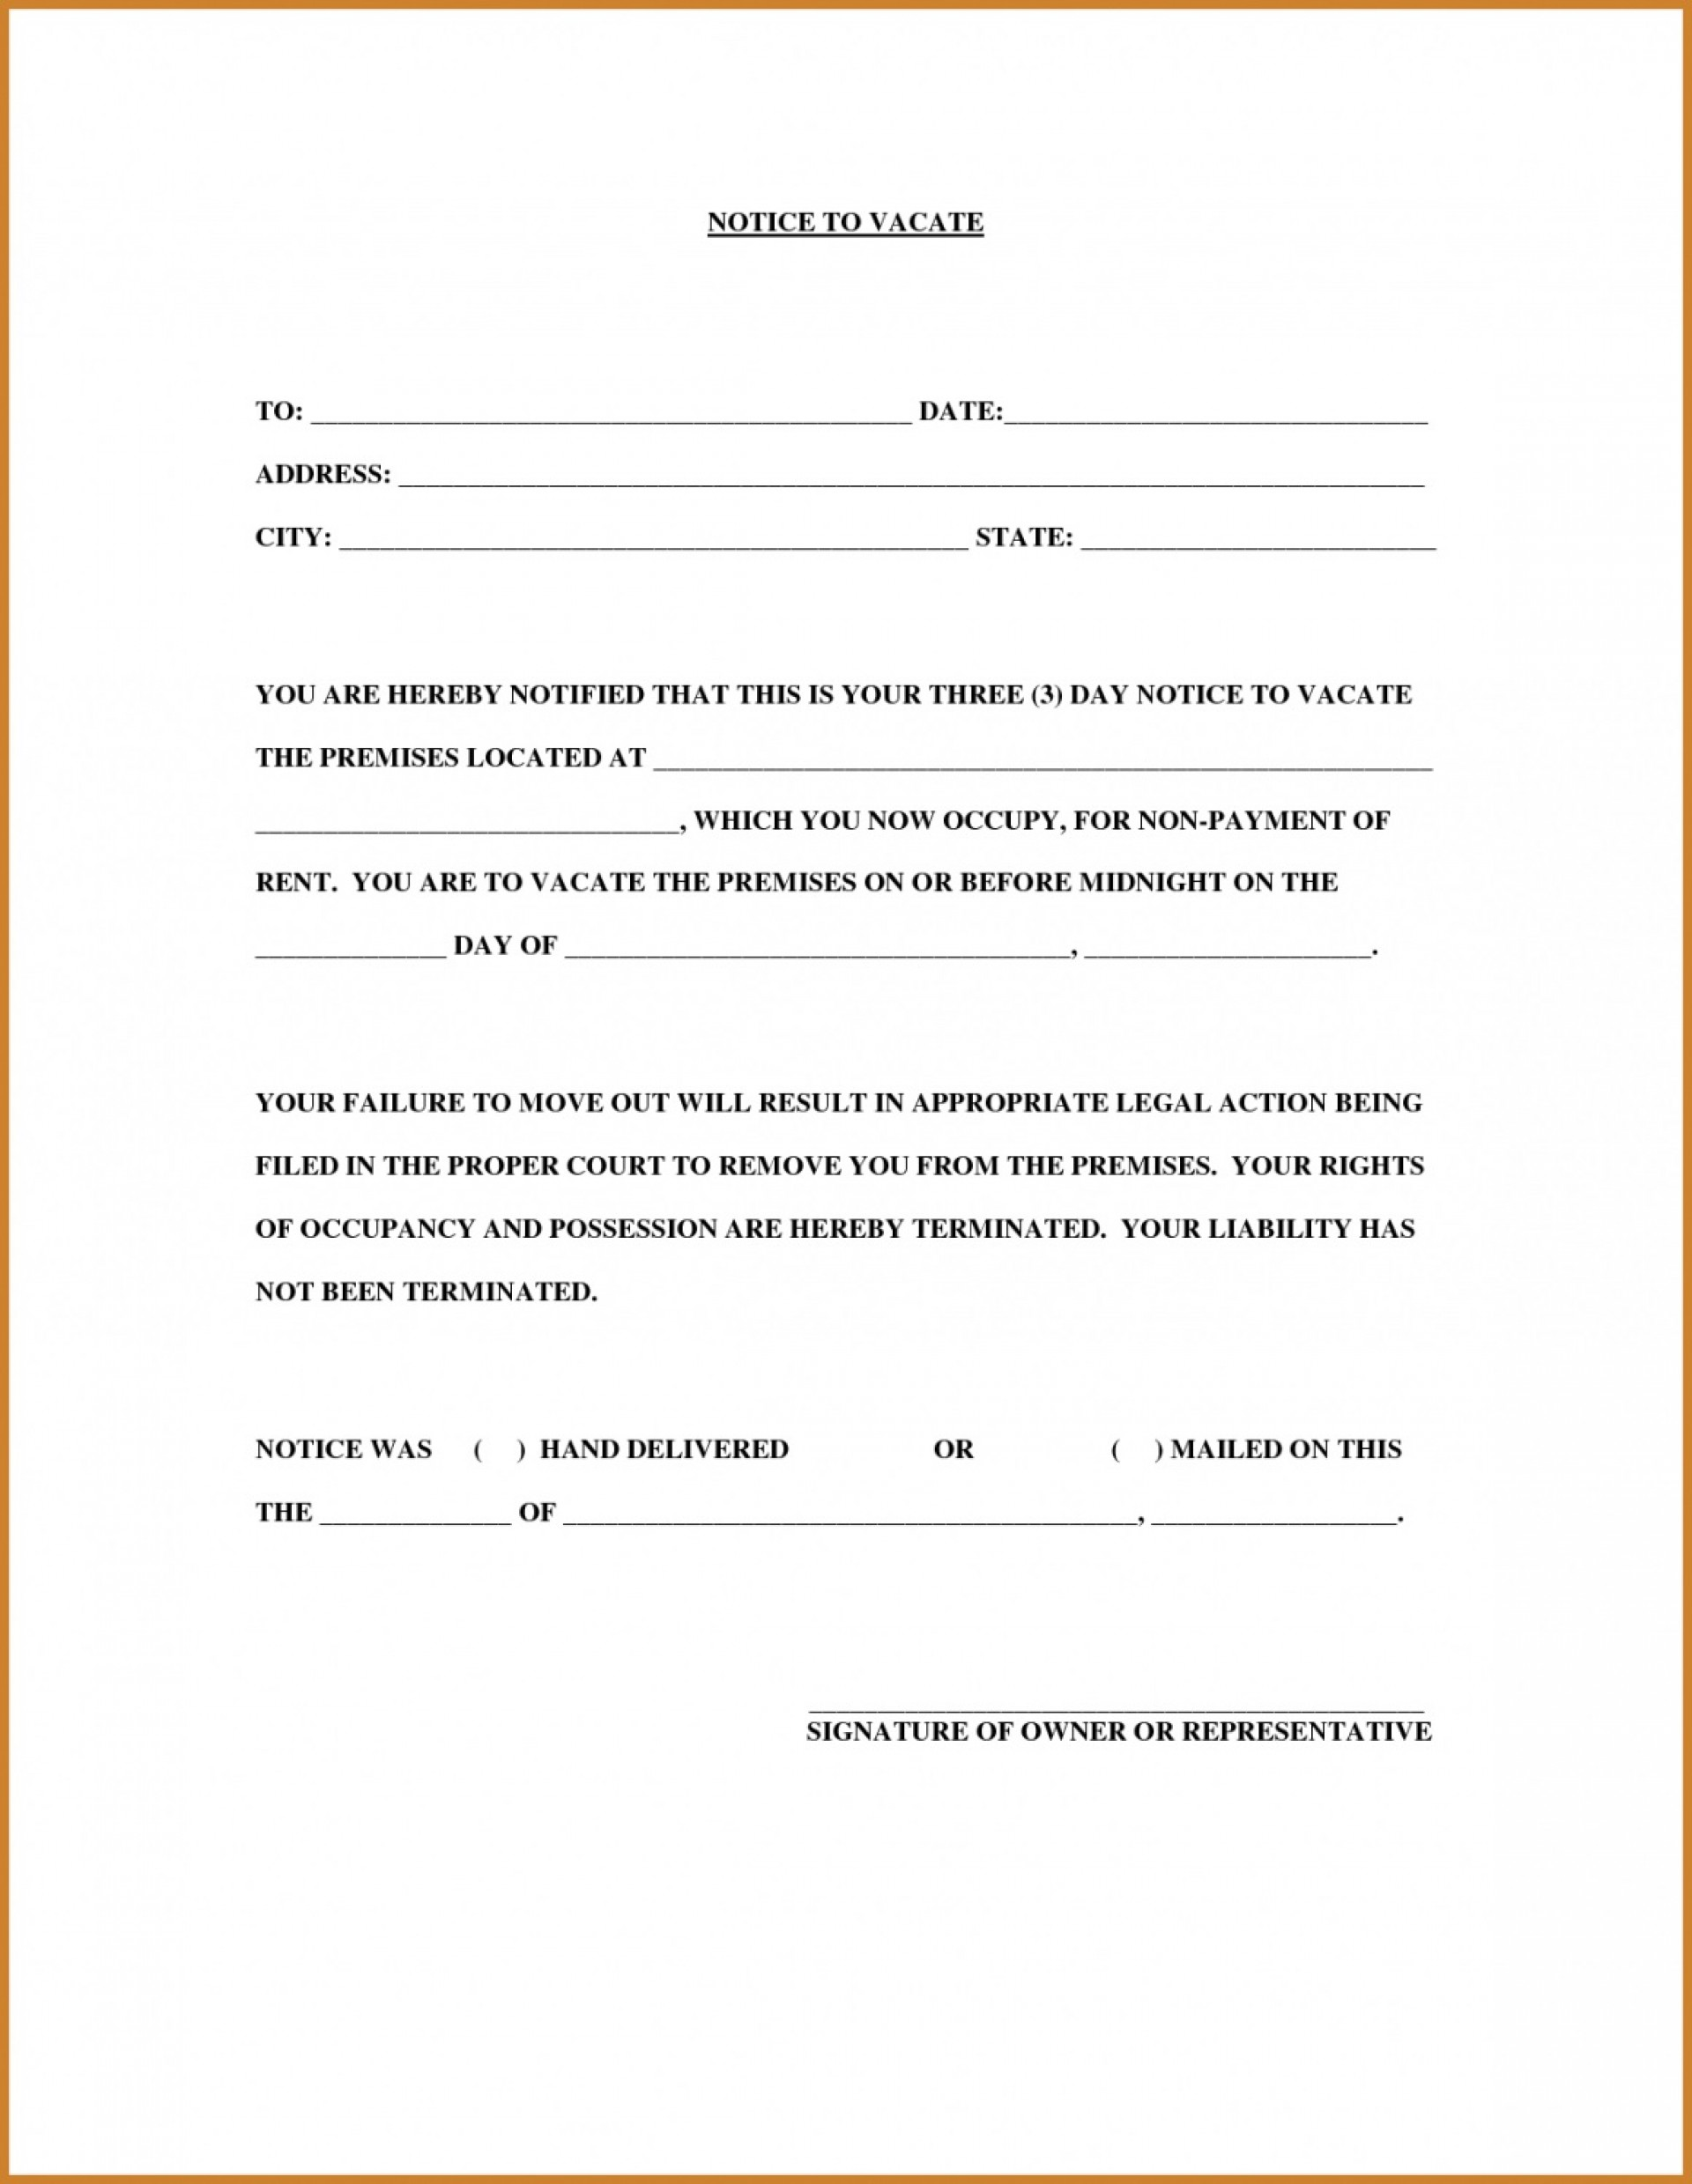 002 Astounding 30 Day Eviction Notice Template High Def  Pdf Form1920